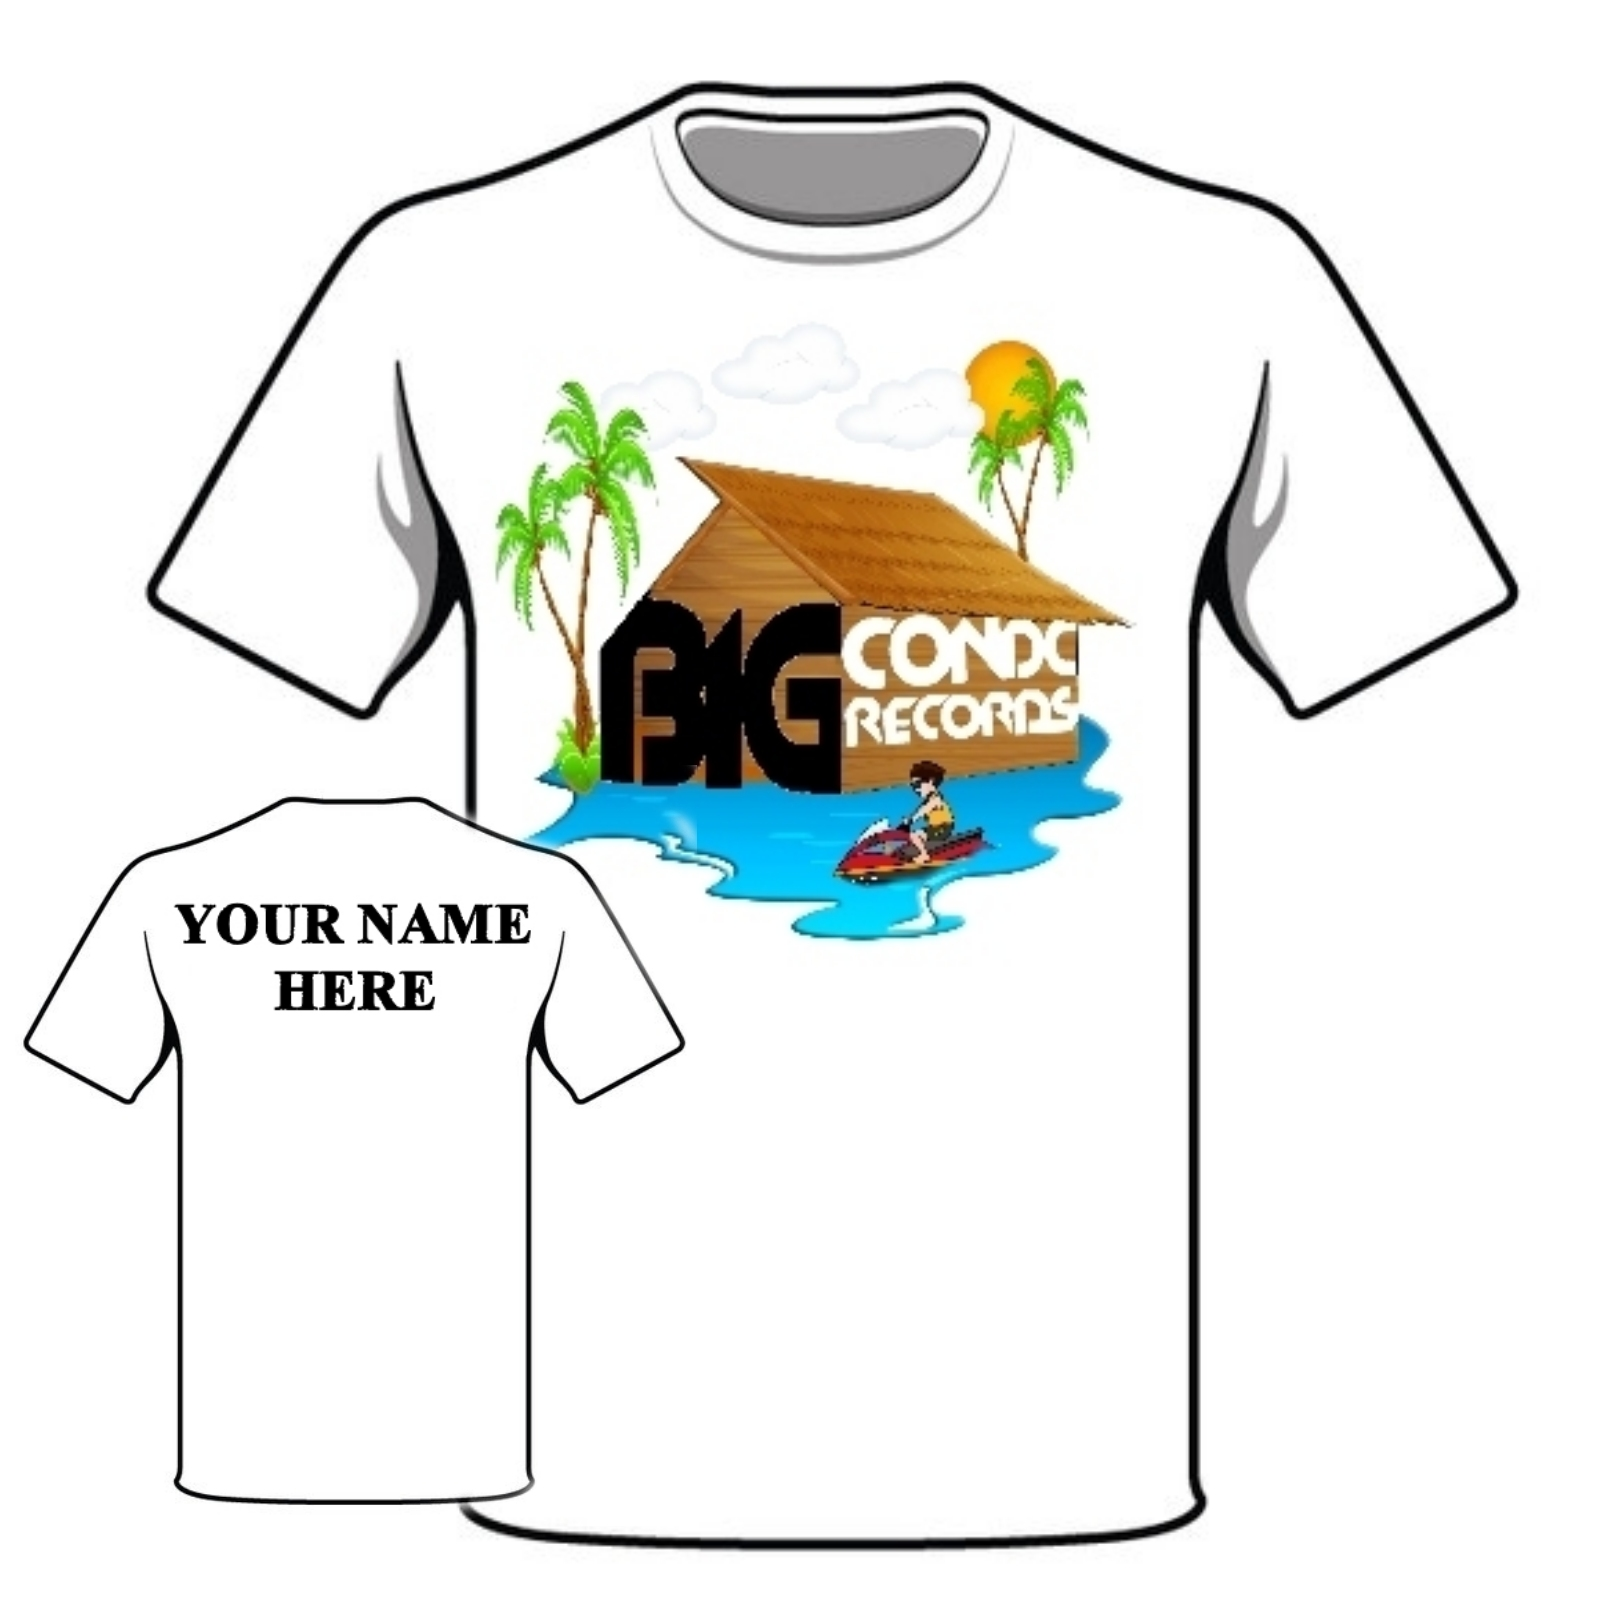 Big Condo T - Shirt , S, M, L, XL, XXL